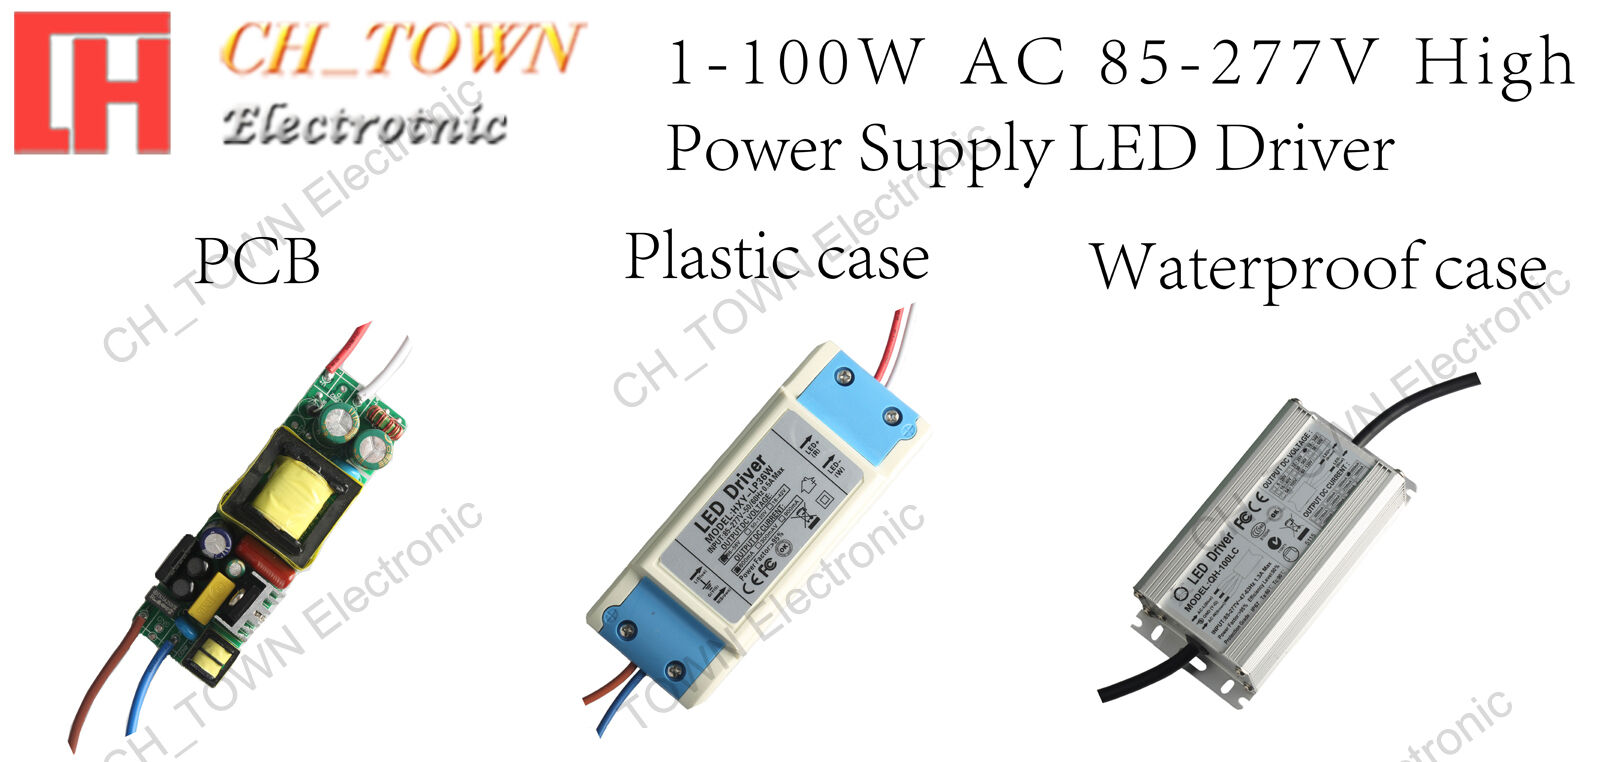 High Power Supply 3W 10W 20W 30W 50W 100W Constant Current COB Chip LED Driver